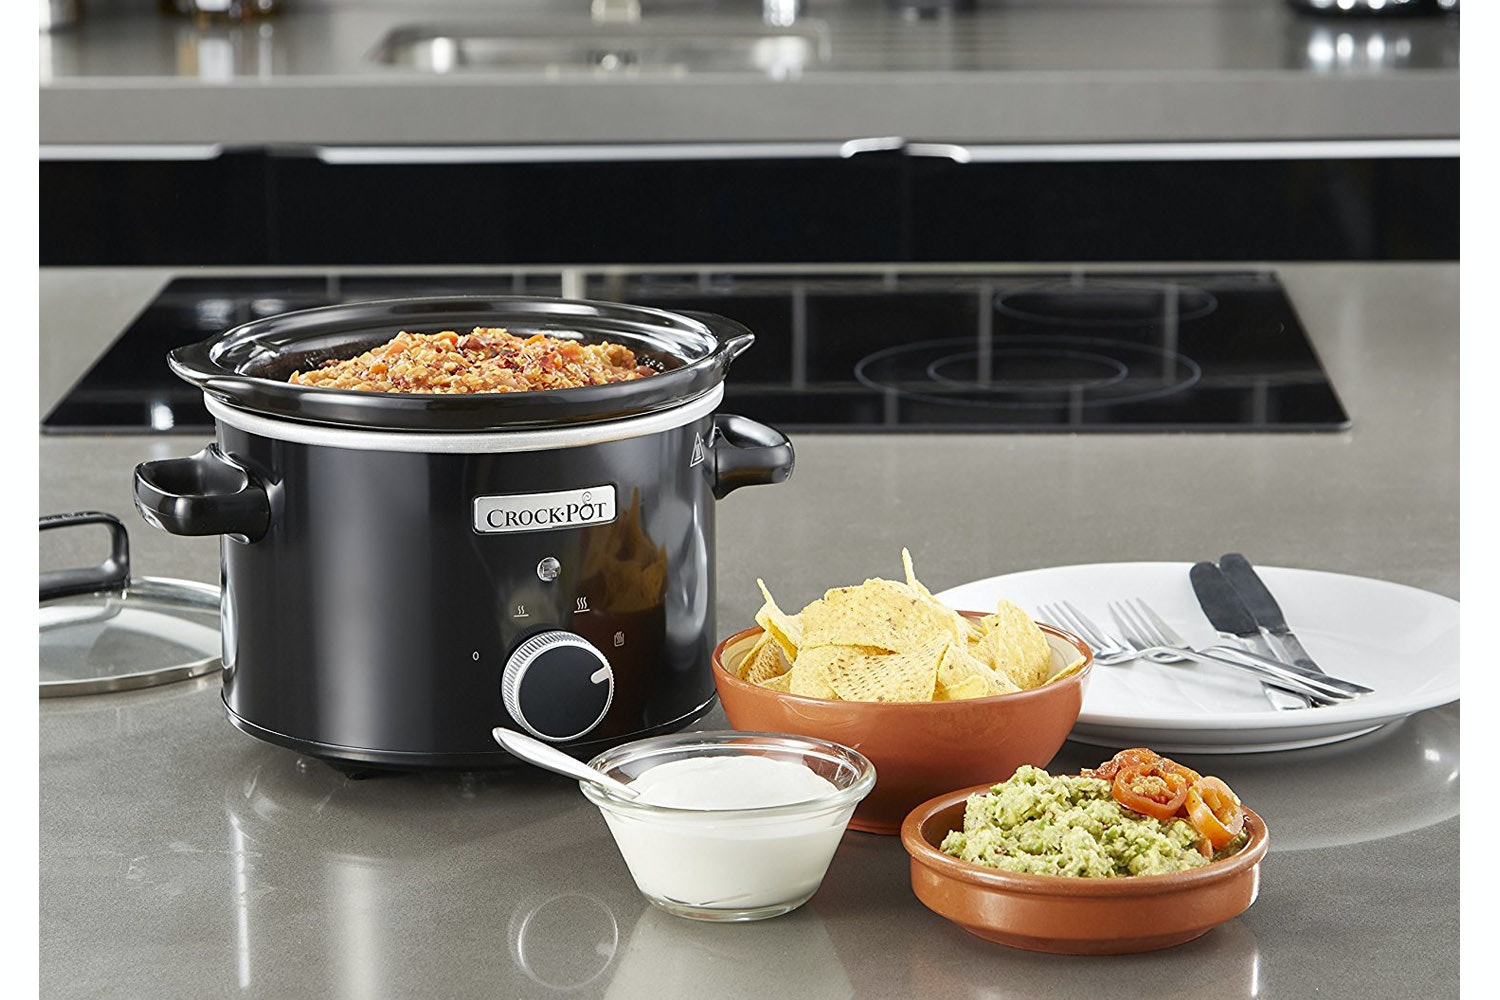 Crock-Pot 2.4L Slow Cooker | CSC046